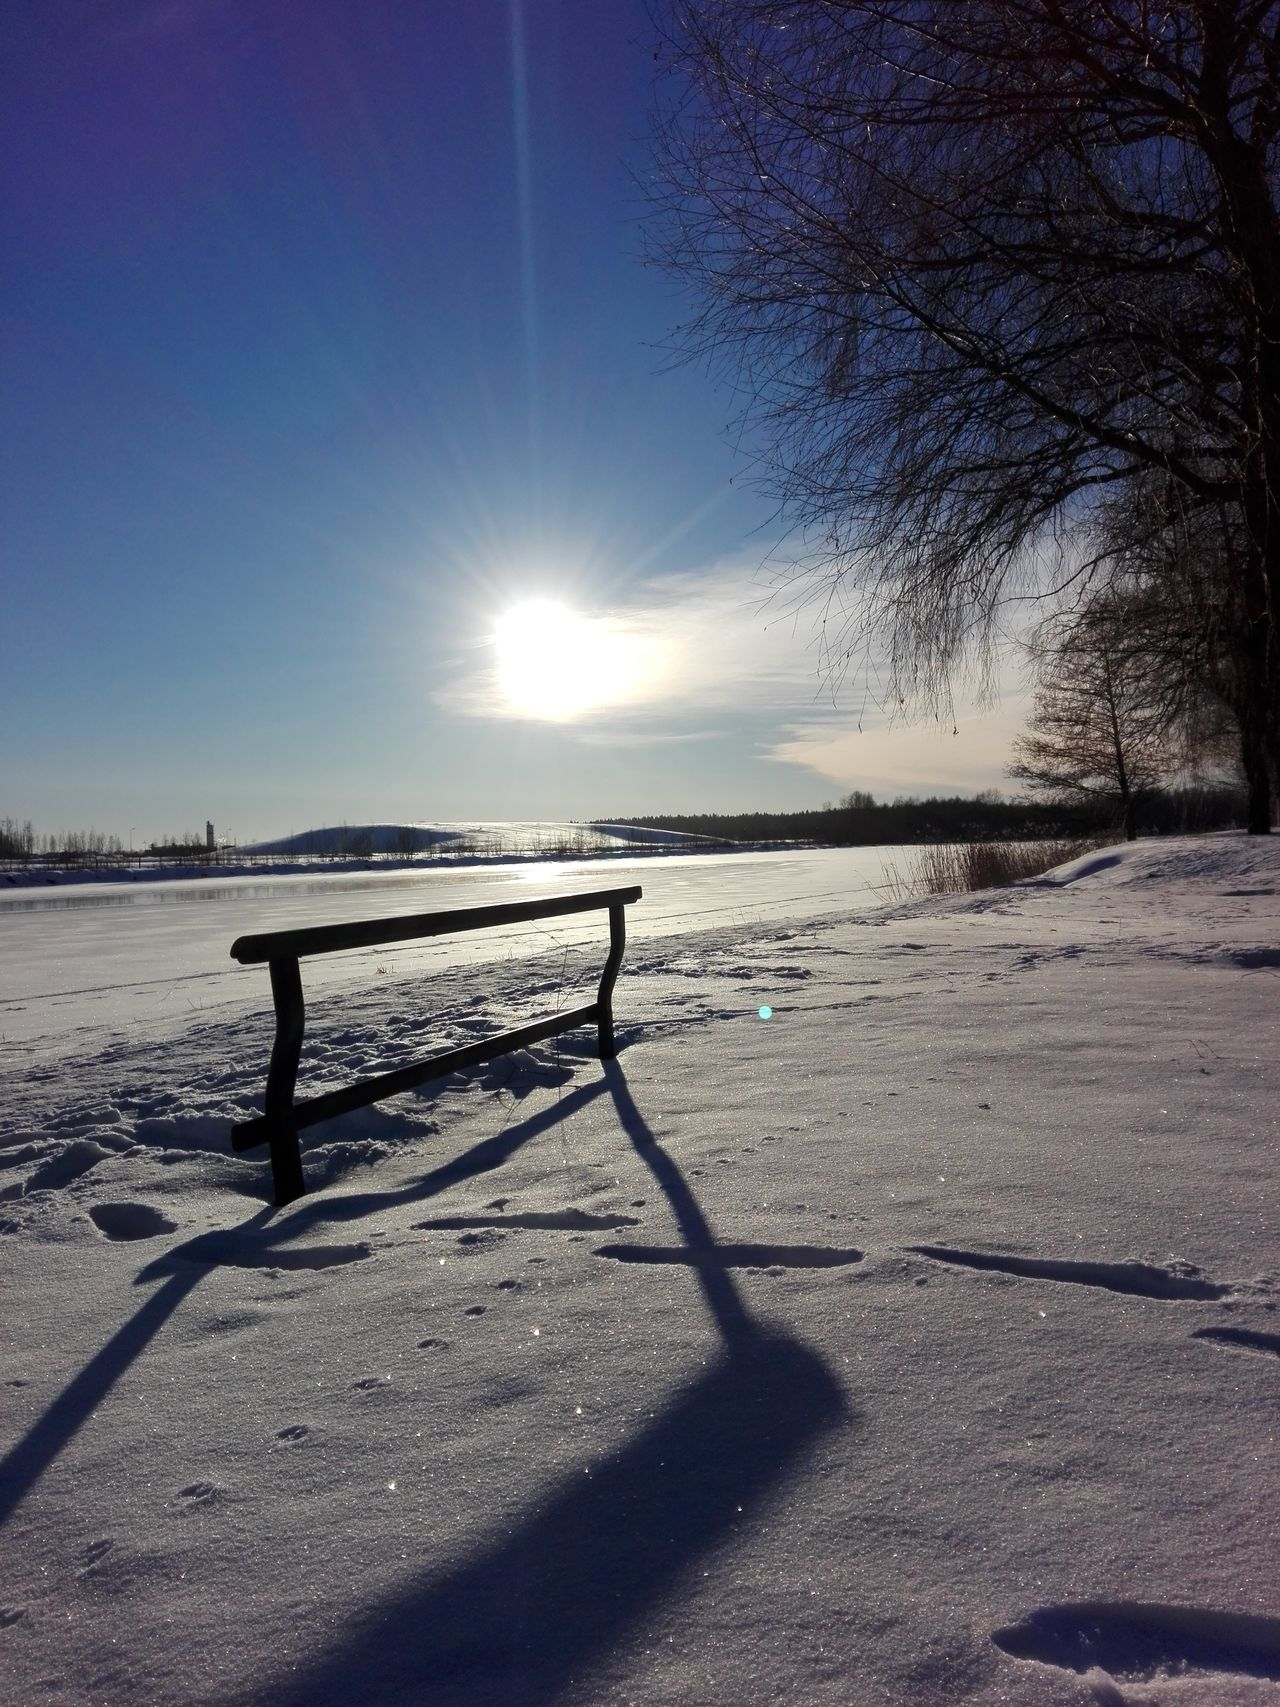 Sun and shadows Sunlight Beauty In Nature Outdoors Cold Temperature Nature Naturelovers Weather Finnish Nature Photography Photographer Nature Photography Winter Naturebeauty Winter Landscape Snow ❄ Landscape_photography Winterwonderland Wintertime Sunset